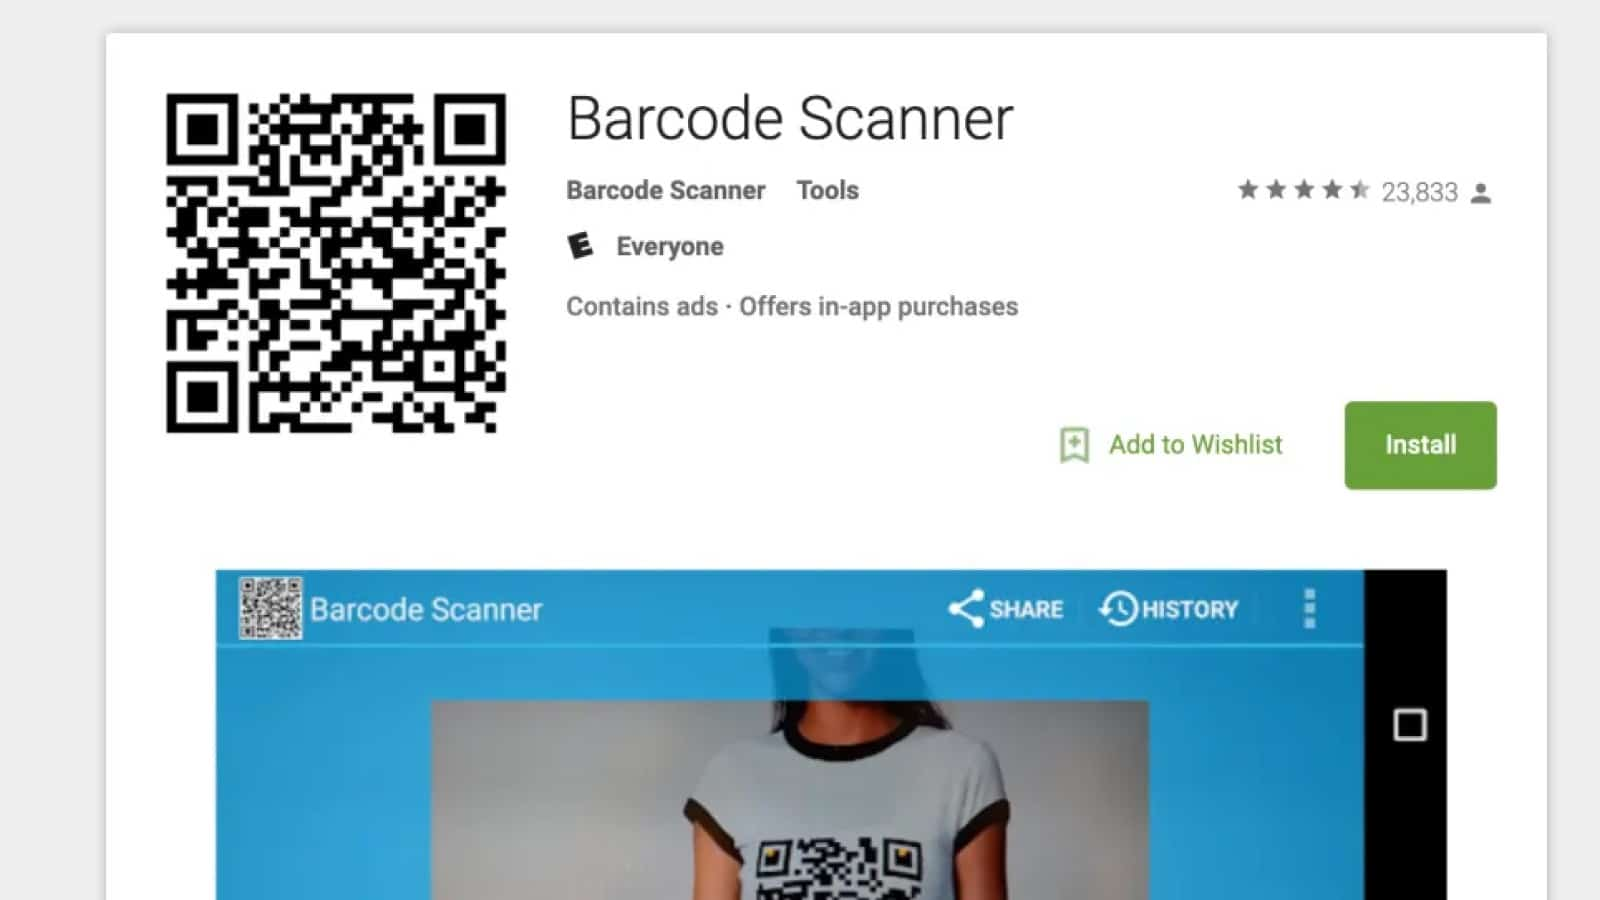 barcode scanner google play store page